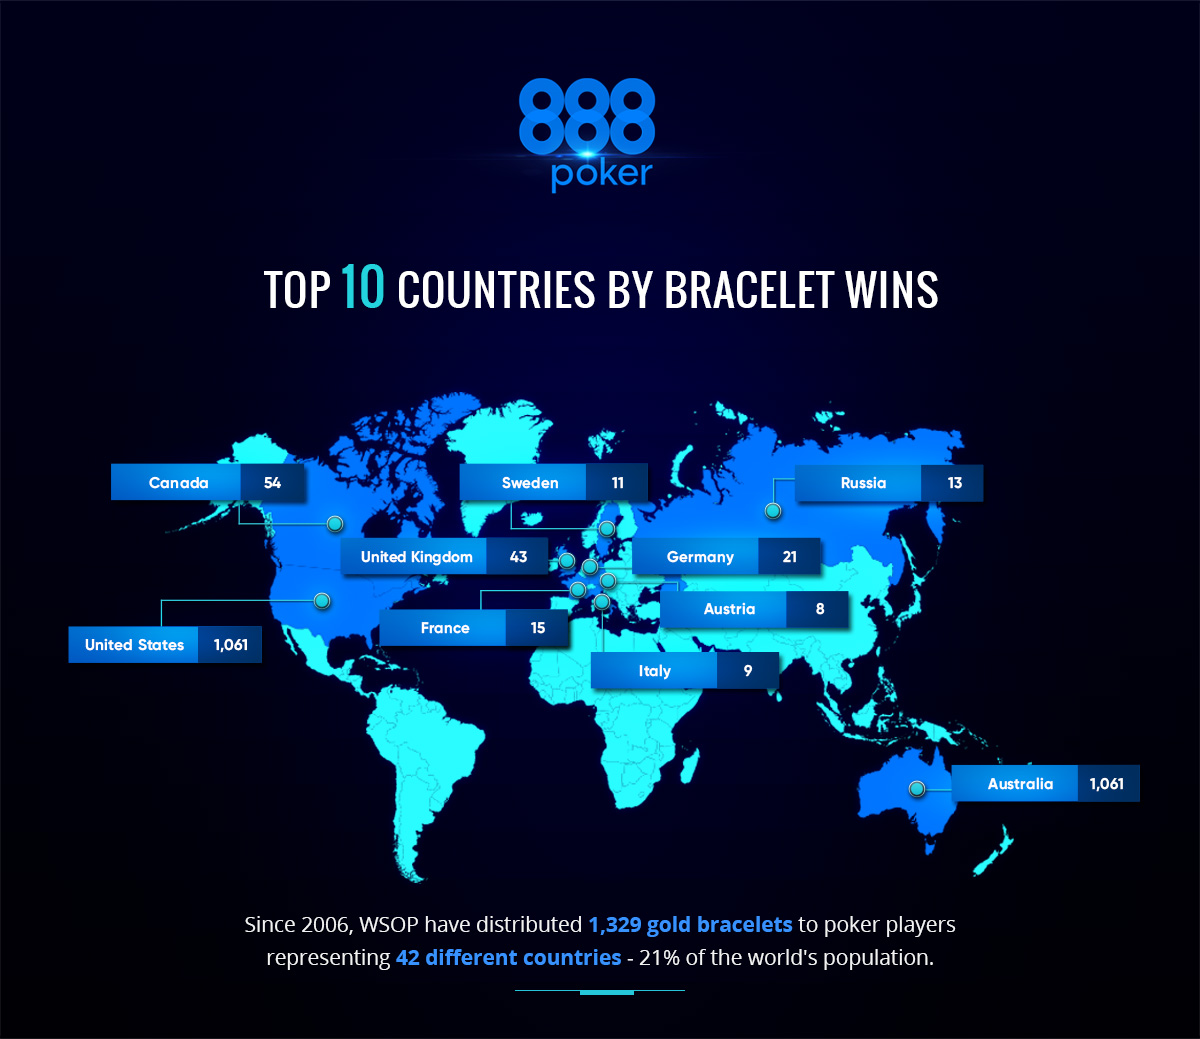 The World in the World Series of Poker